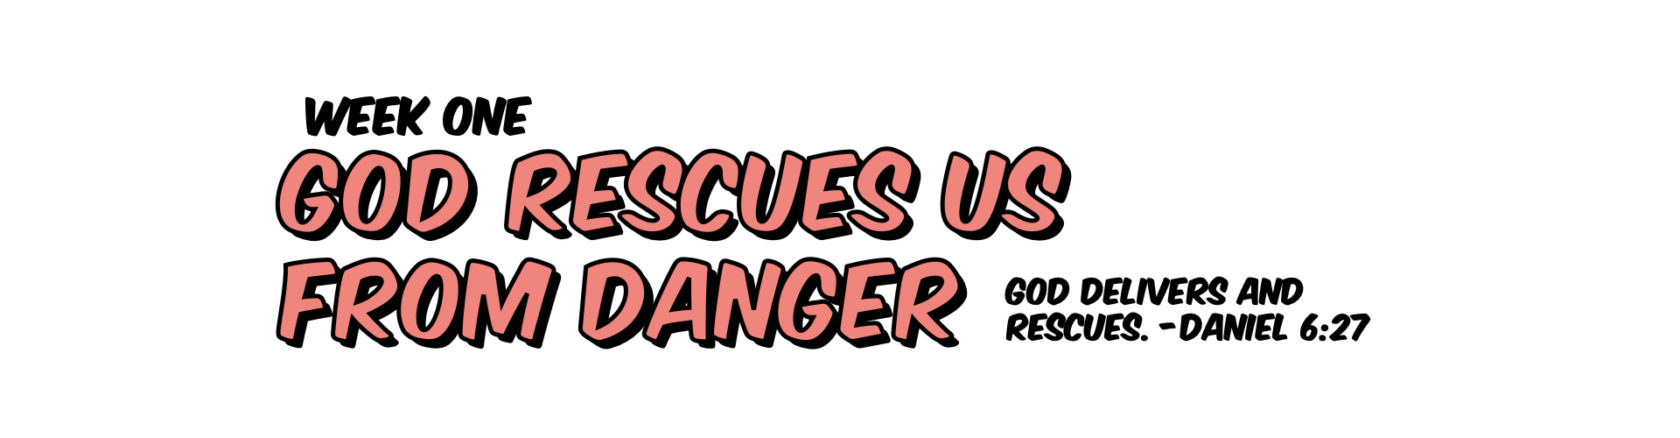 God Rescues Us From Danger vbs at home